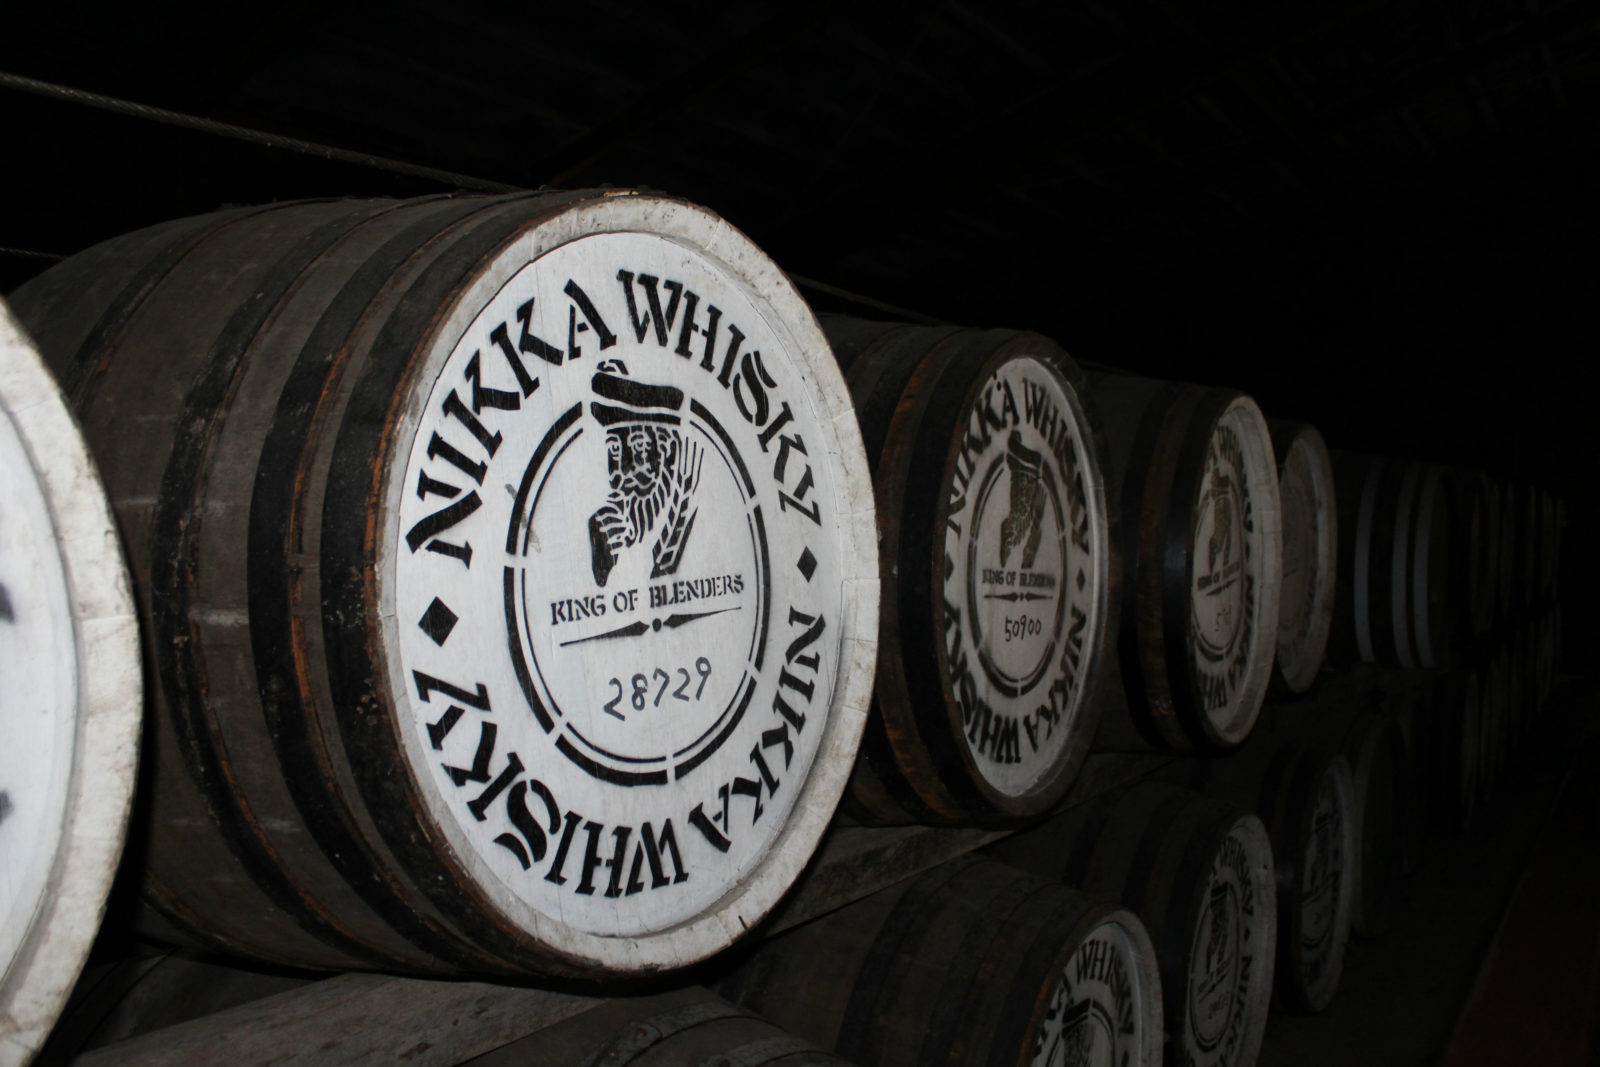 Nikka To Discontinue Taketsuru Pure Malt Range